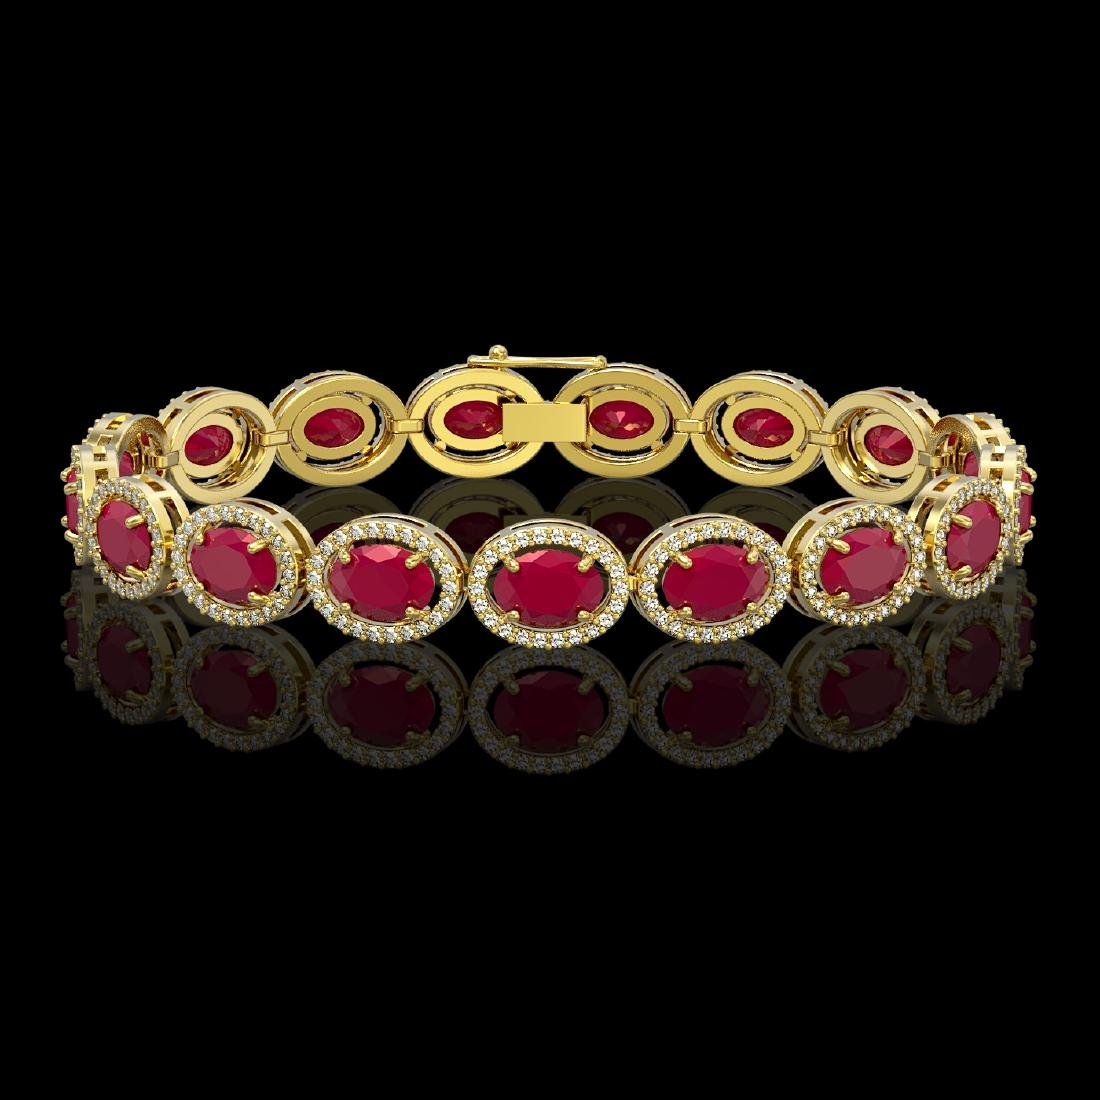 22.89 CTW Ruby & Diamond Halo Bracelet 10K Yellow Gold